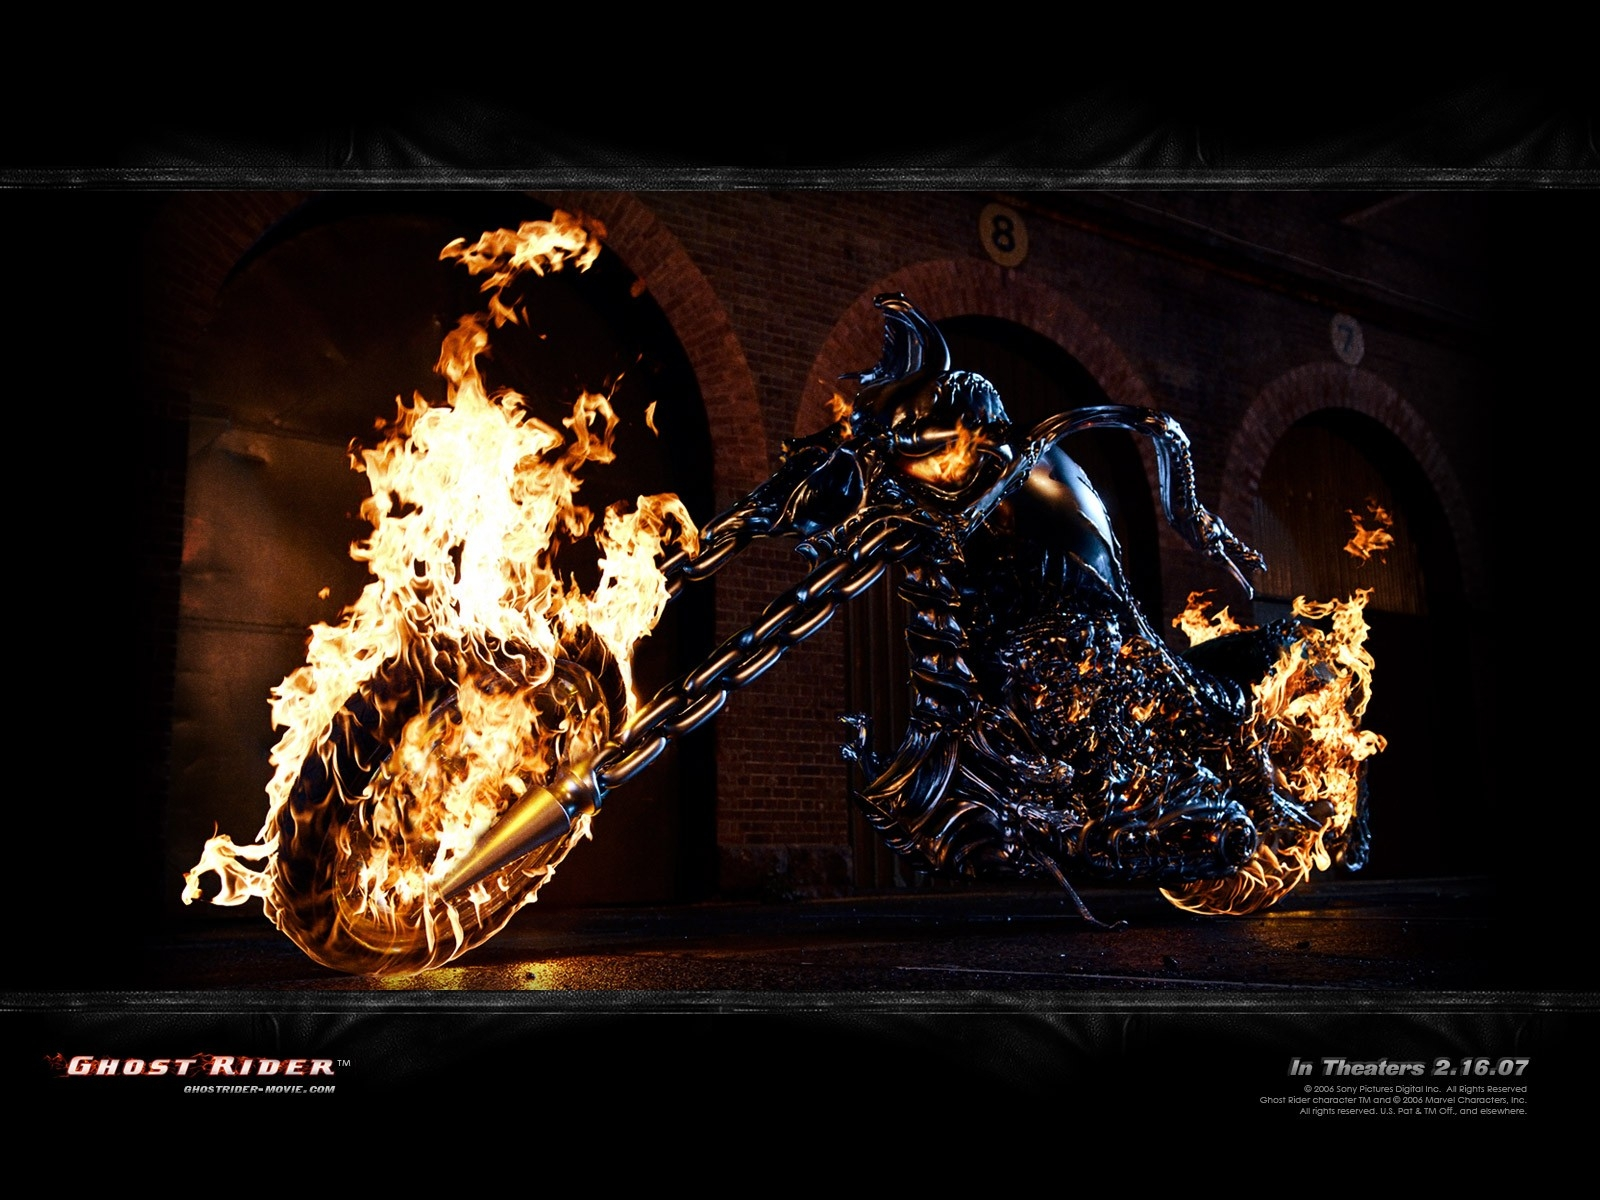 Ghost Rider: wallpaper del film